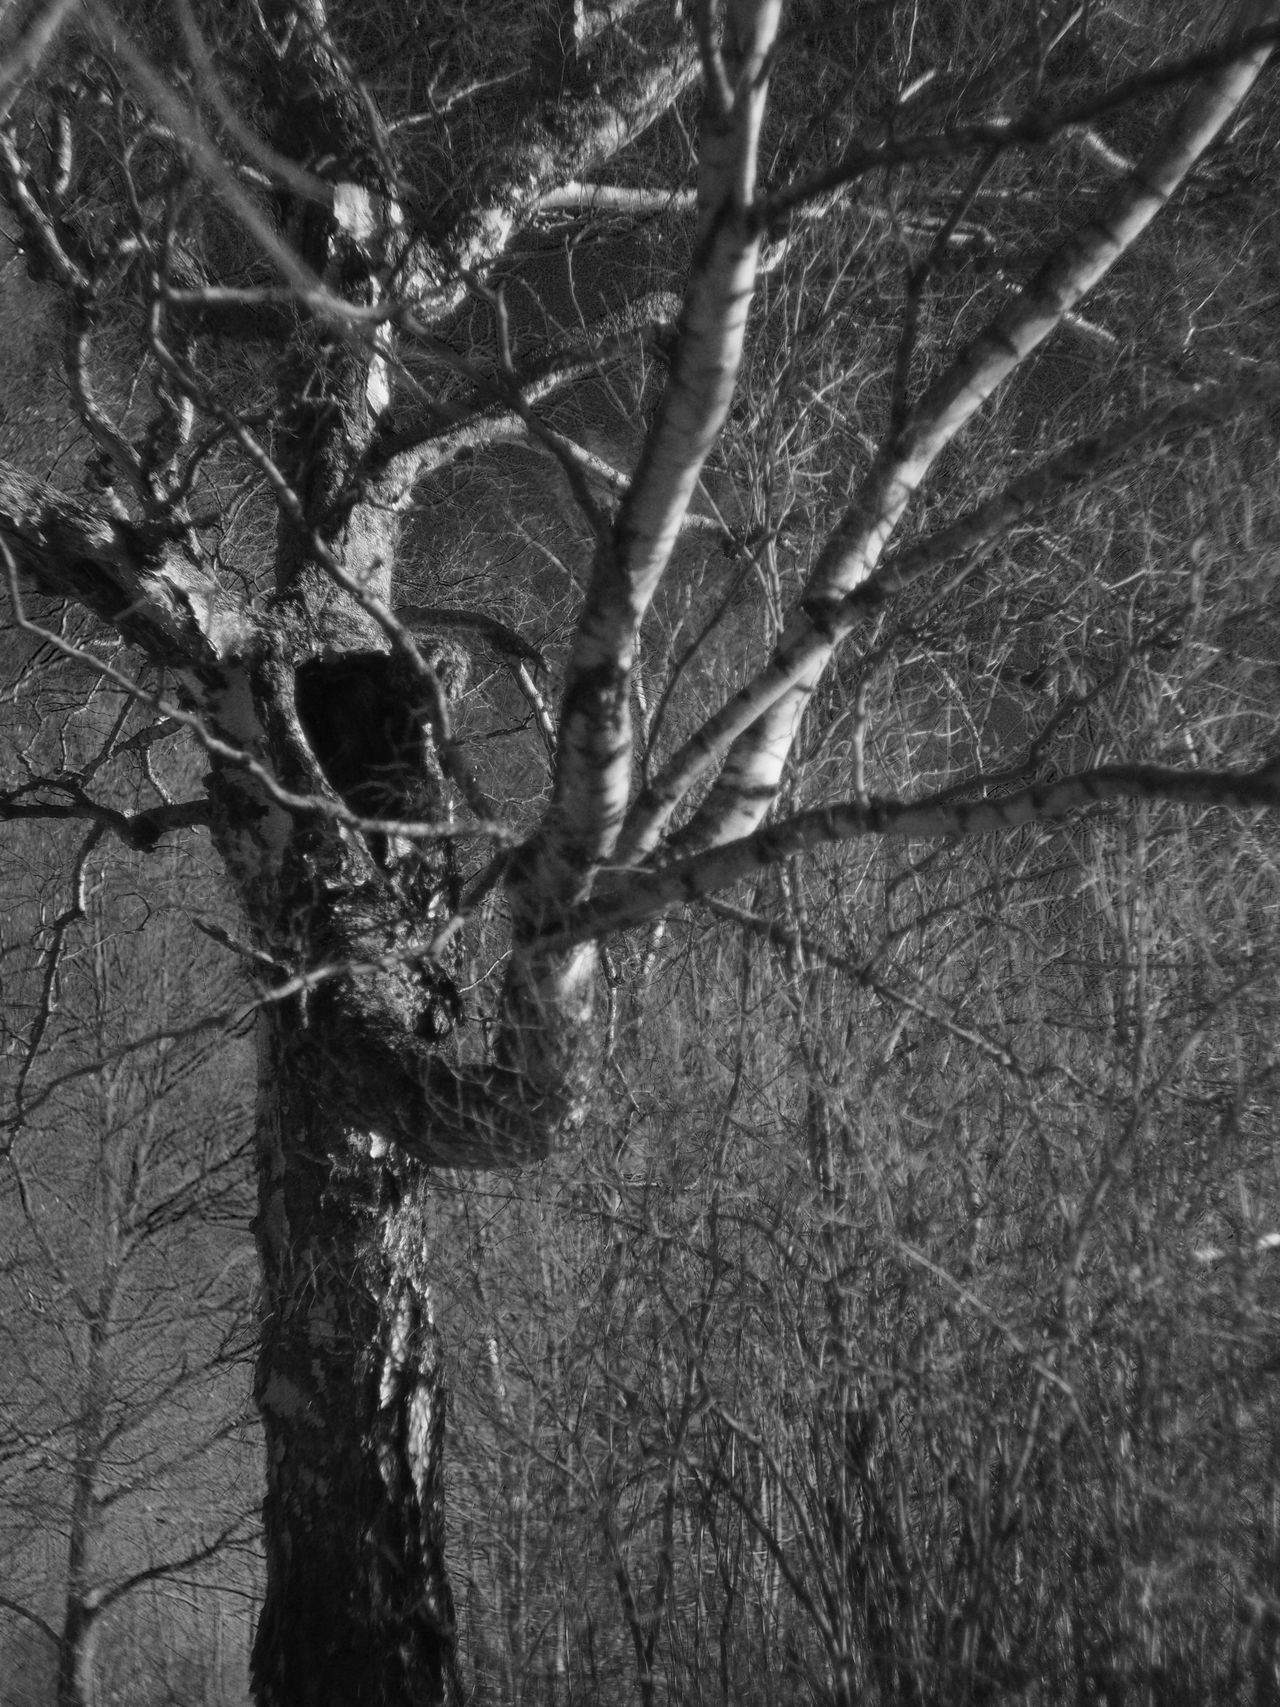 Think I will call this 'Call of Cthulhu' 😬😋 Tree Nature Branch No People Bare Tree Leaf Outdoors Forest Day Close-up Beauty In Nature Shallow Depth Of Field Blackandwhite Black & White Black And White Monochrome Monochrome Photography Nature Tree Trunk Tree Winter